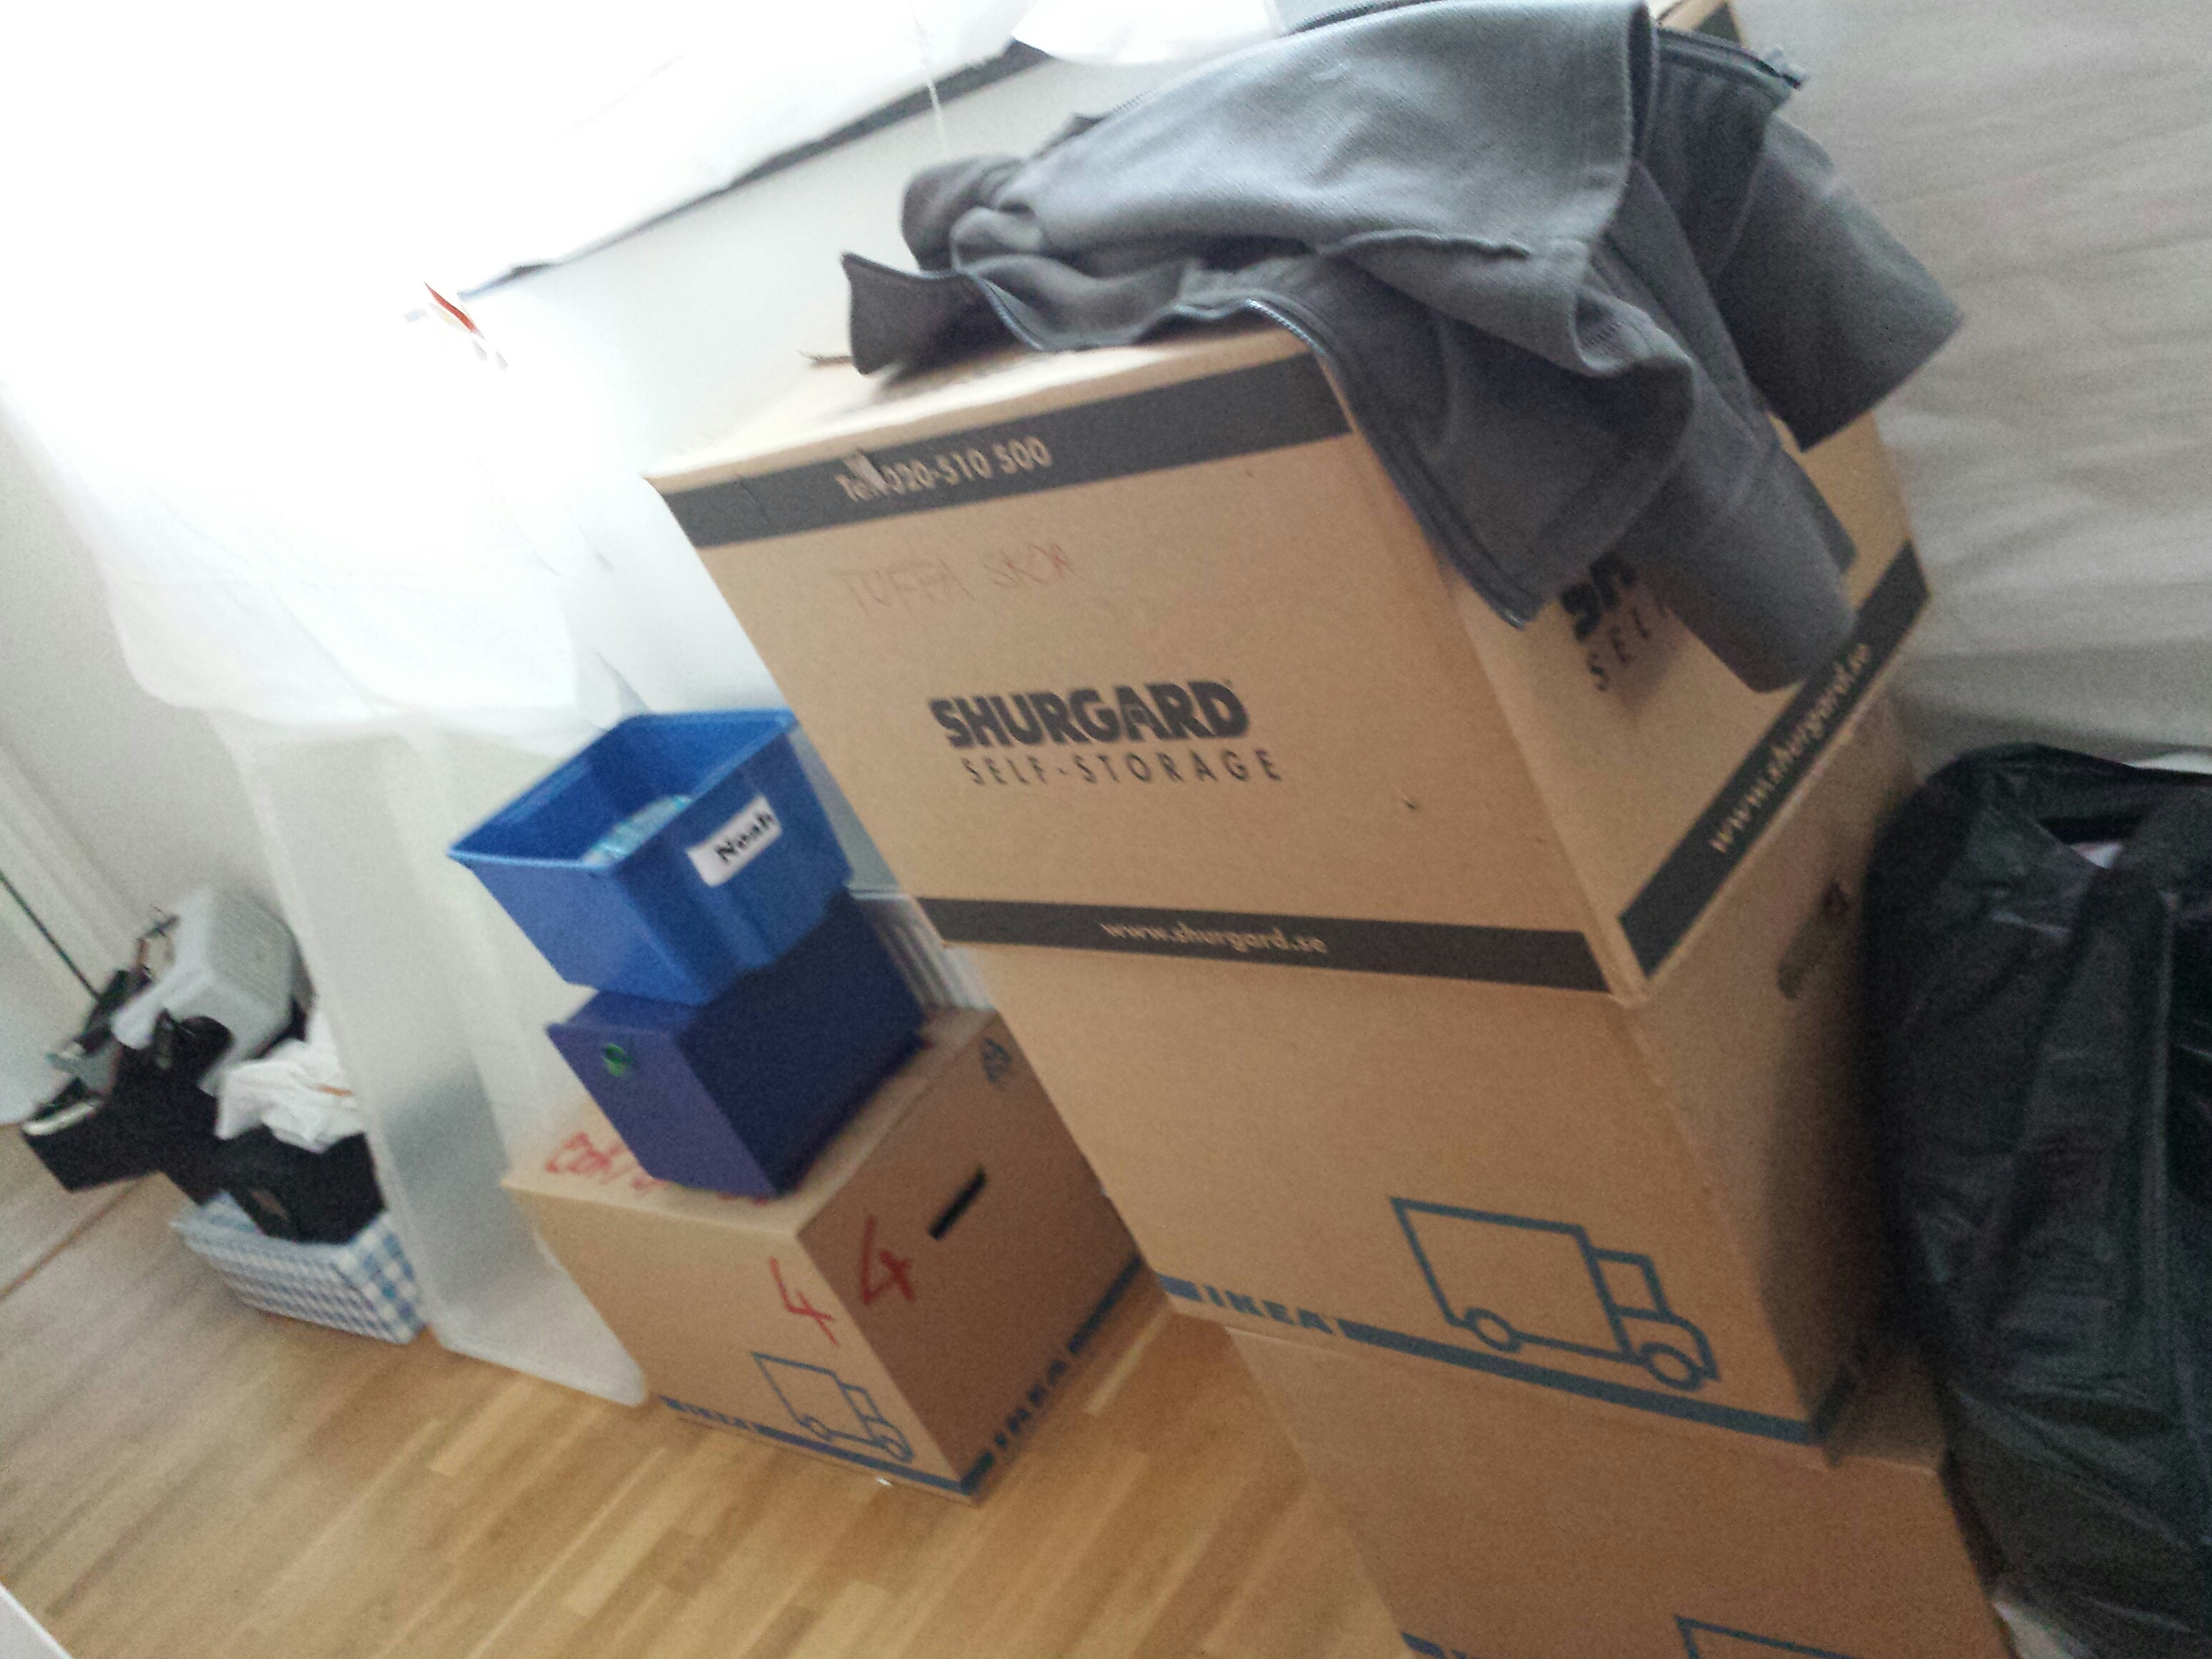 moving a wholehearted journey boxes and stuff everywhere